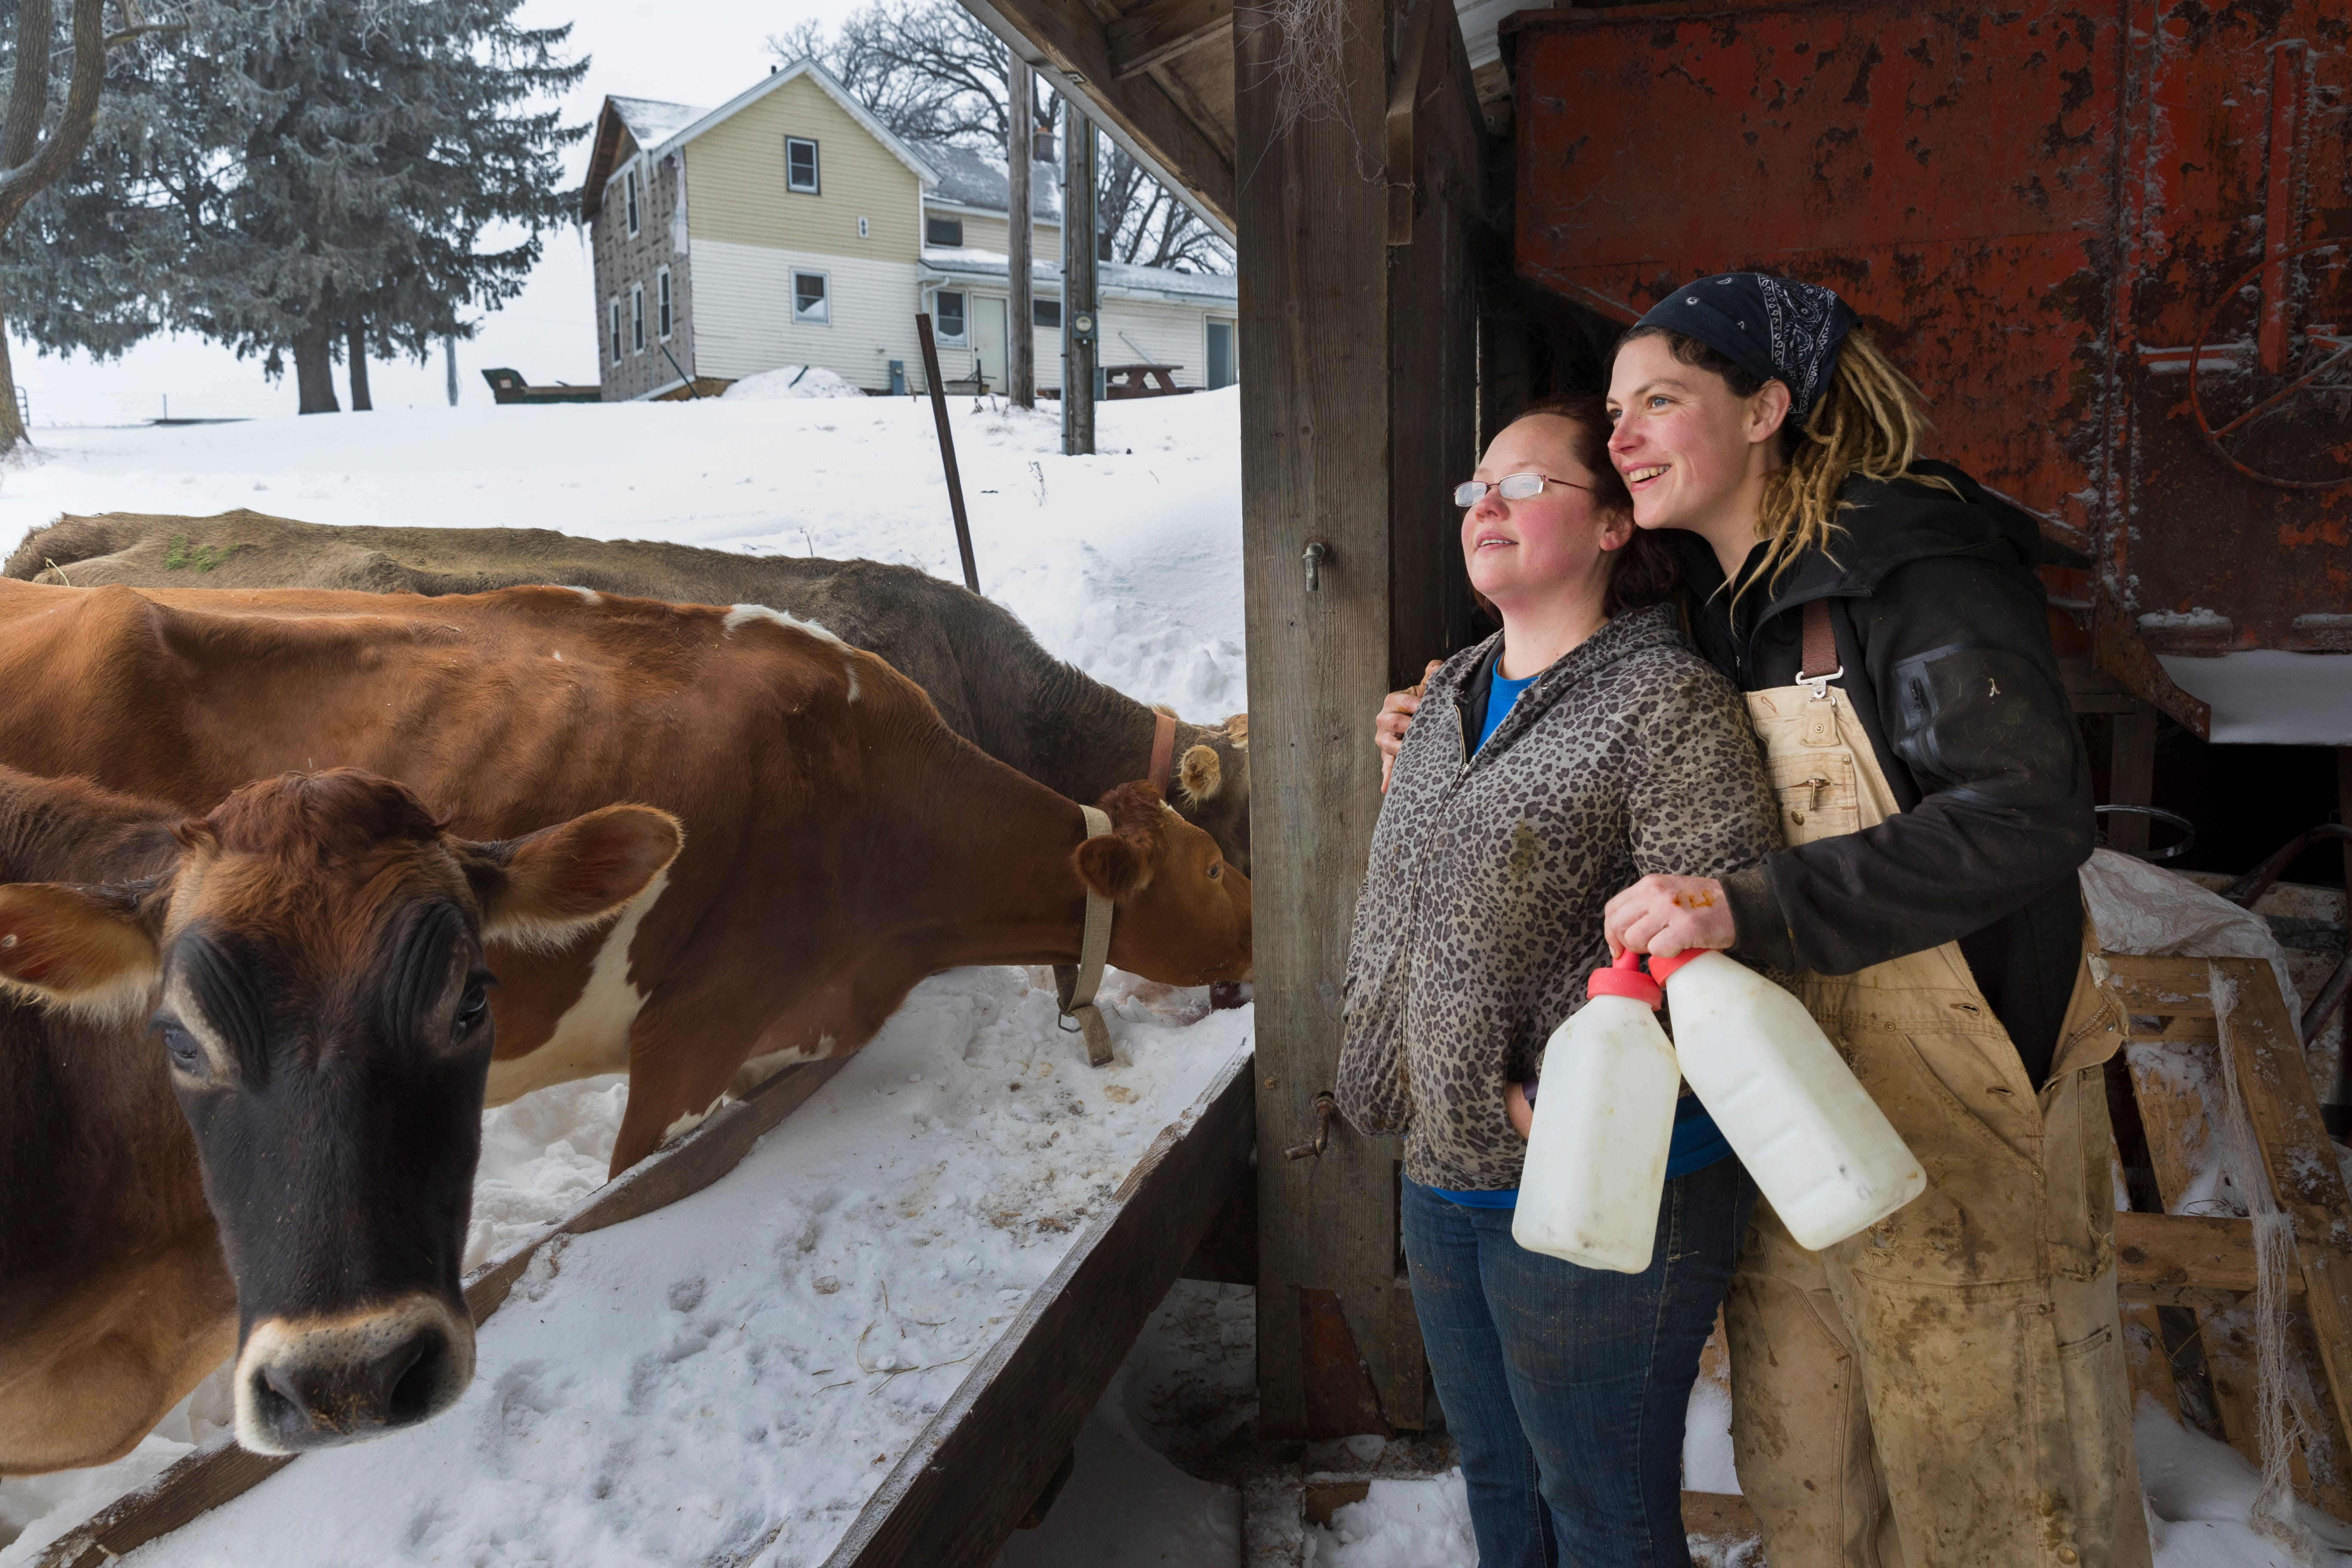 Brandi Harris (left) and her wife, Emily, check on their heifers on the dairy farm they own.